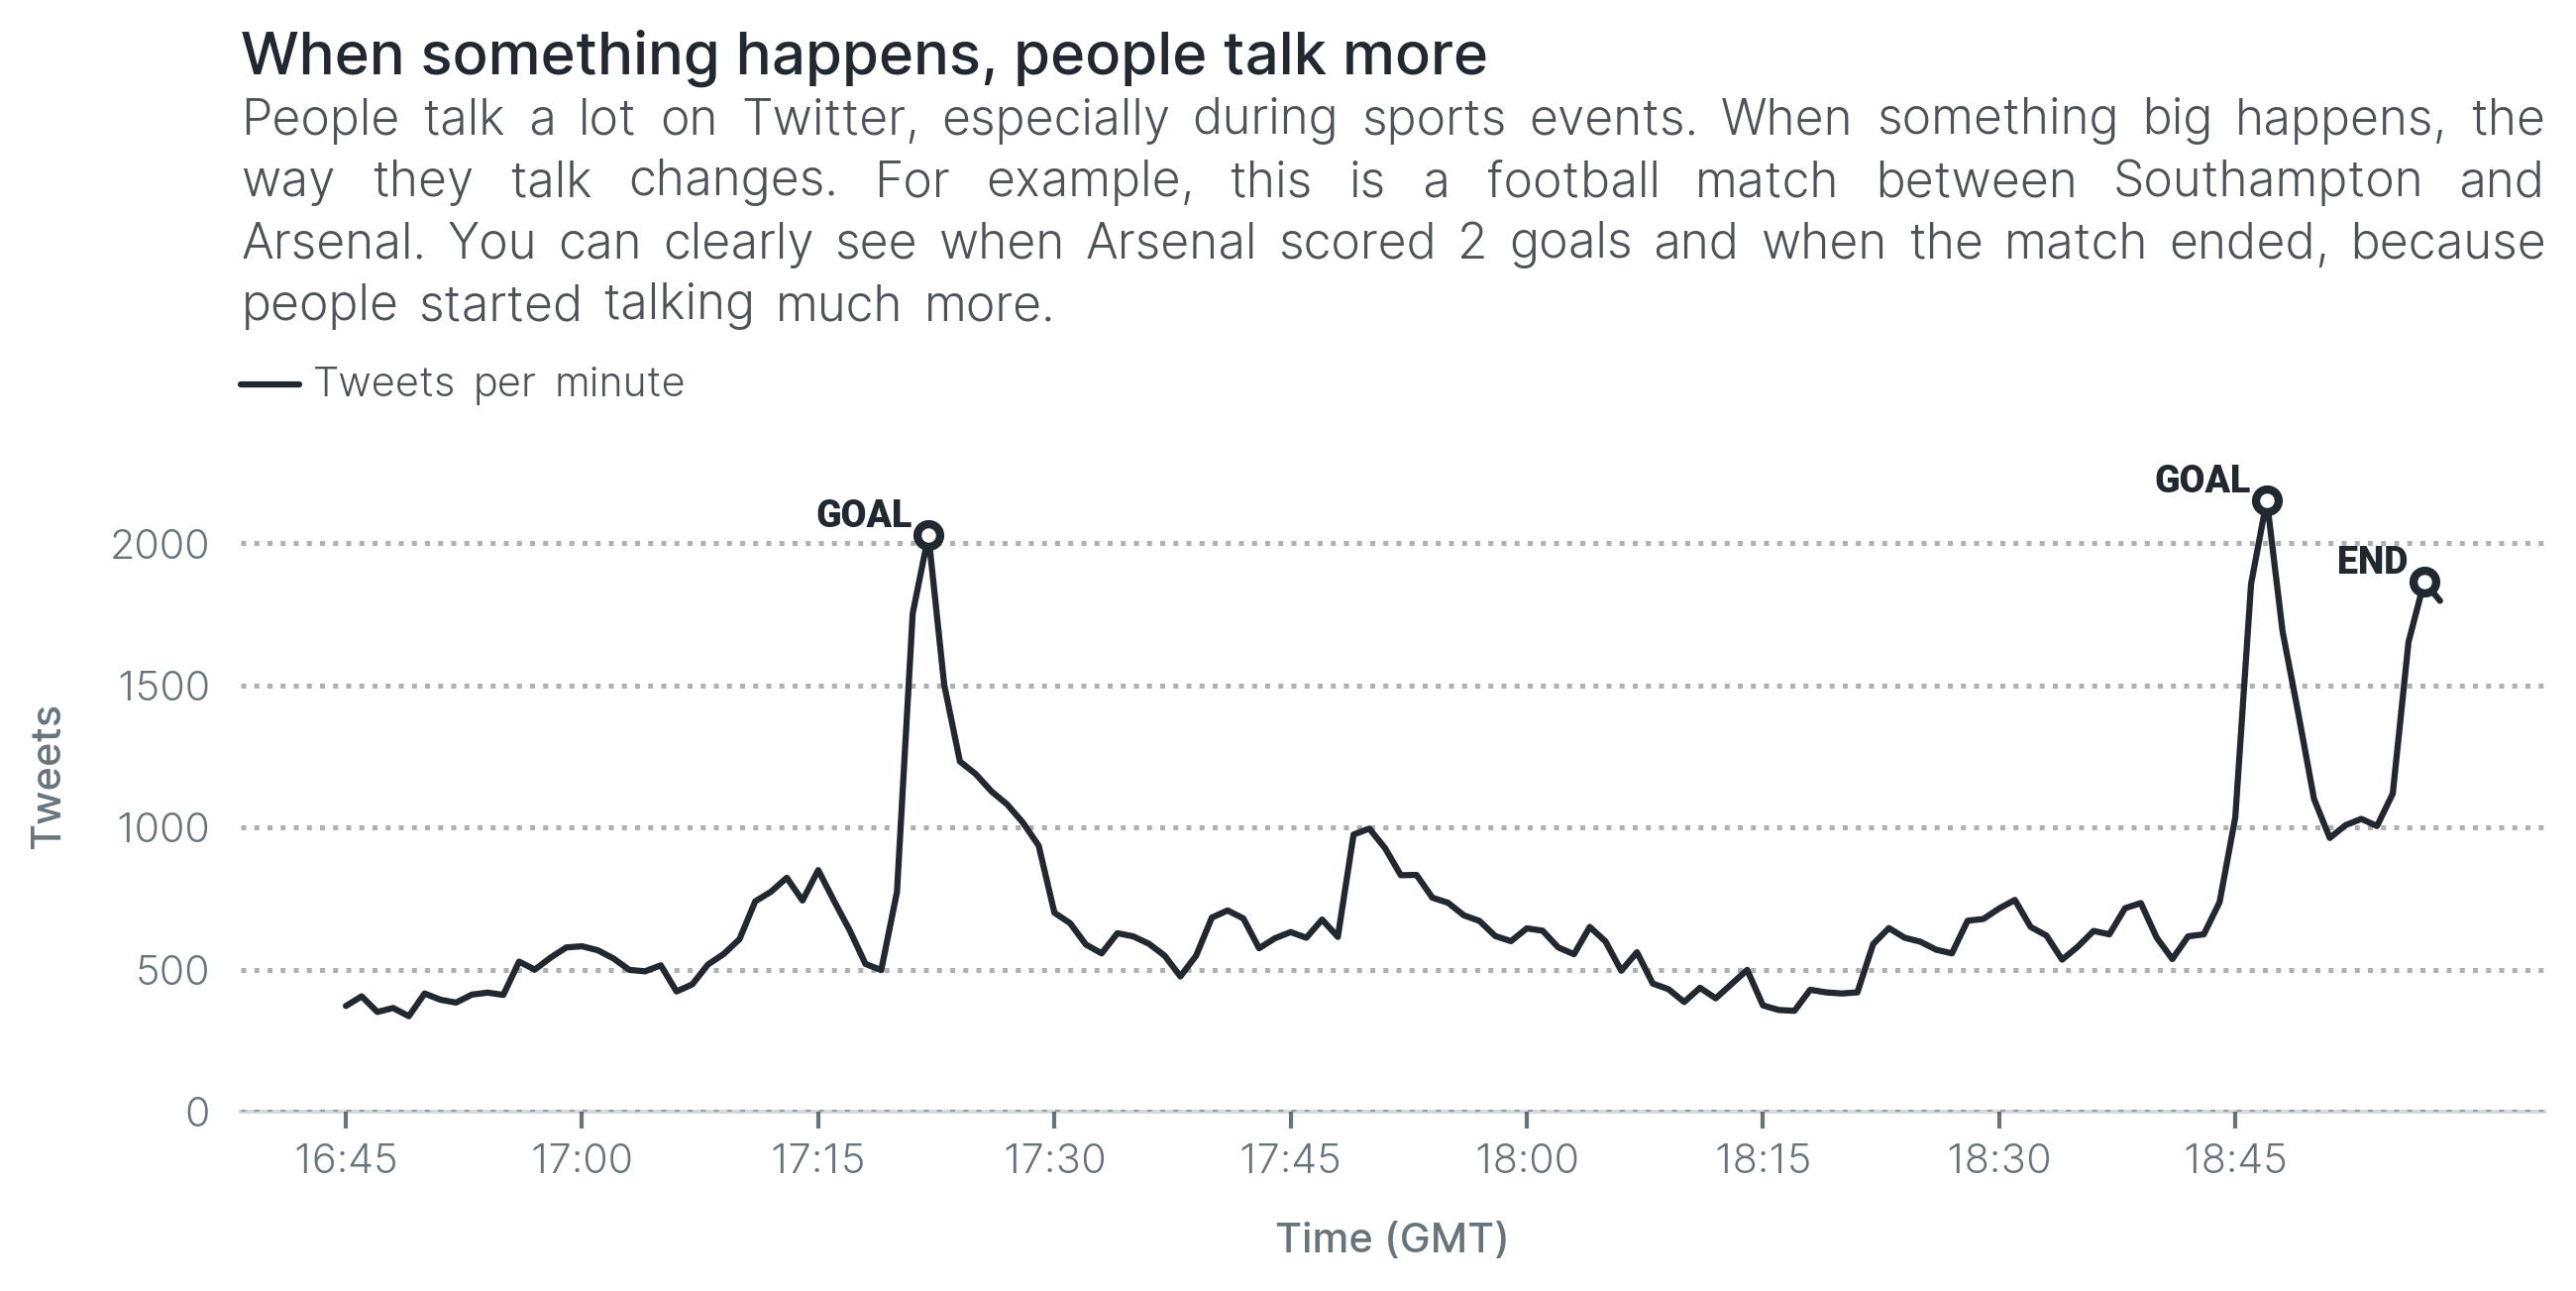 When something happens, people talk more. People talk a lot on Twitter, especially during sports events. When something big happens, the way they talk changes. For example, this is a football match between Southampton and Arsenal. You can clearly see when Arsenal scored 2 goals and when the match ended, because people started talking much more.